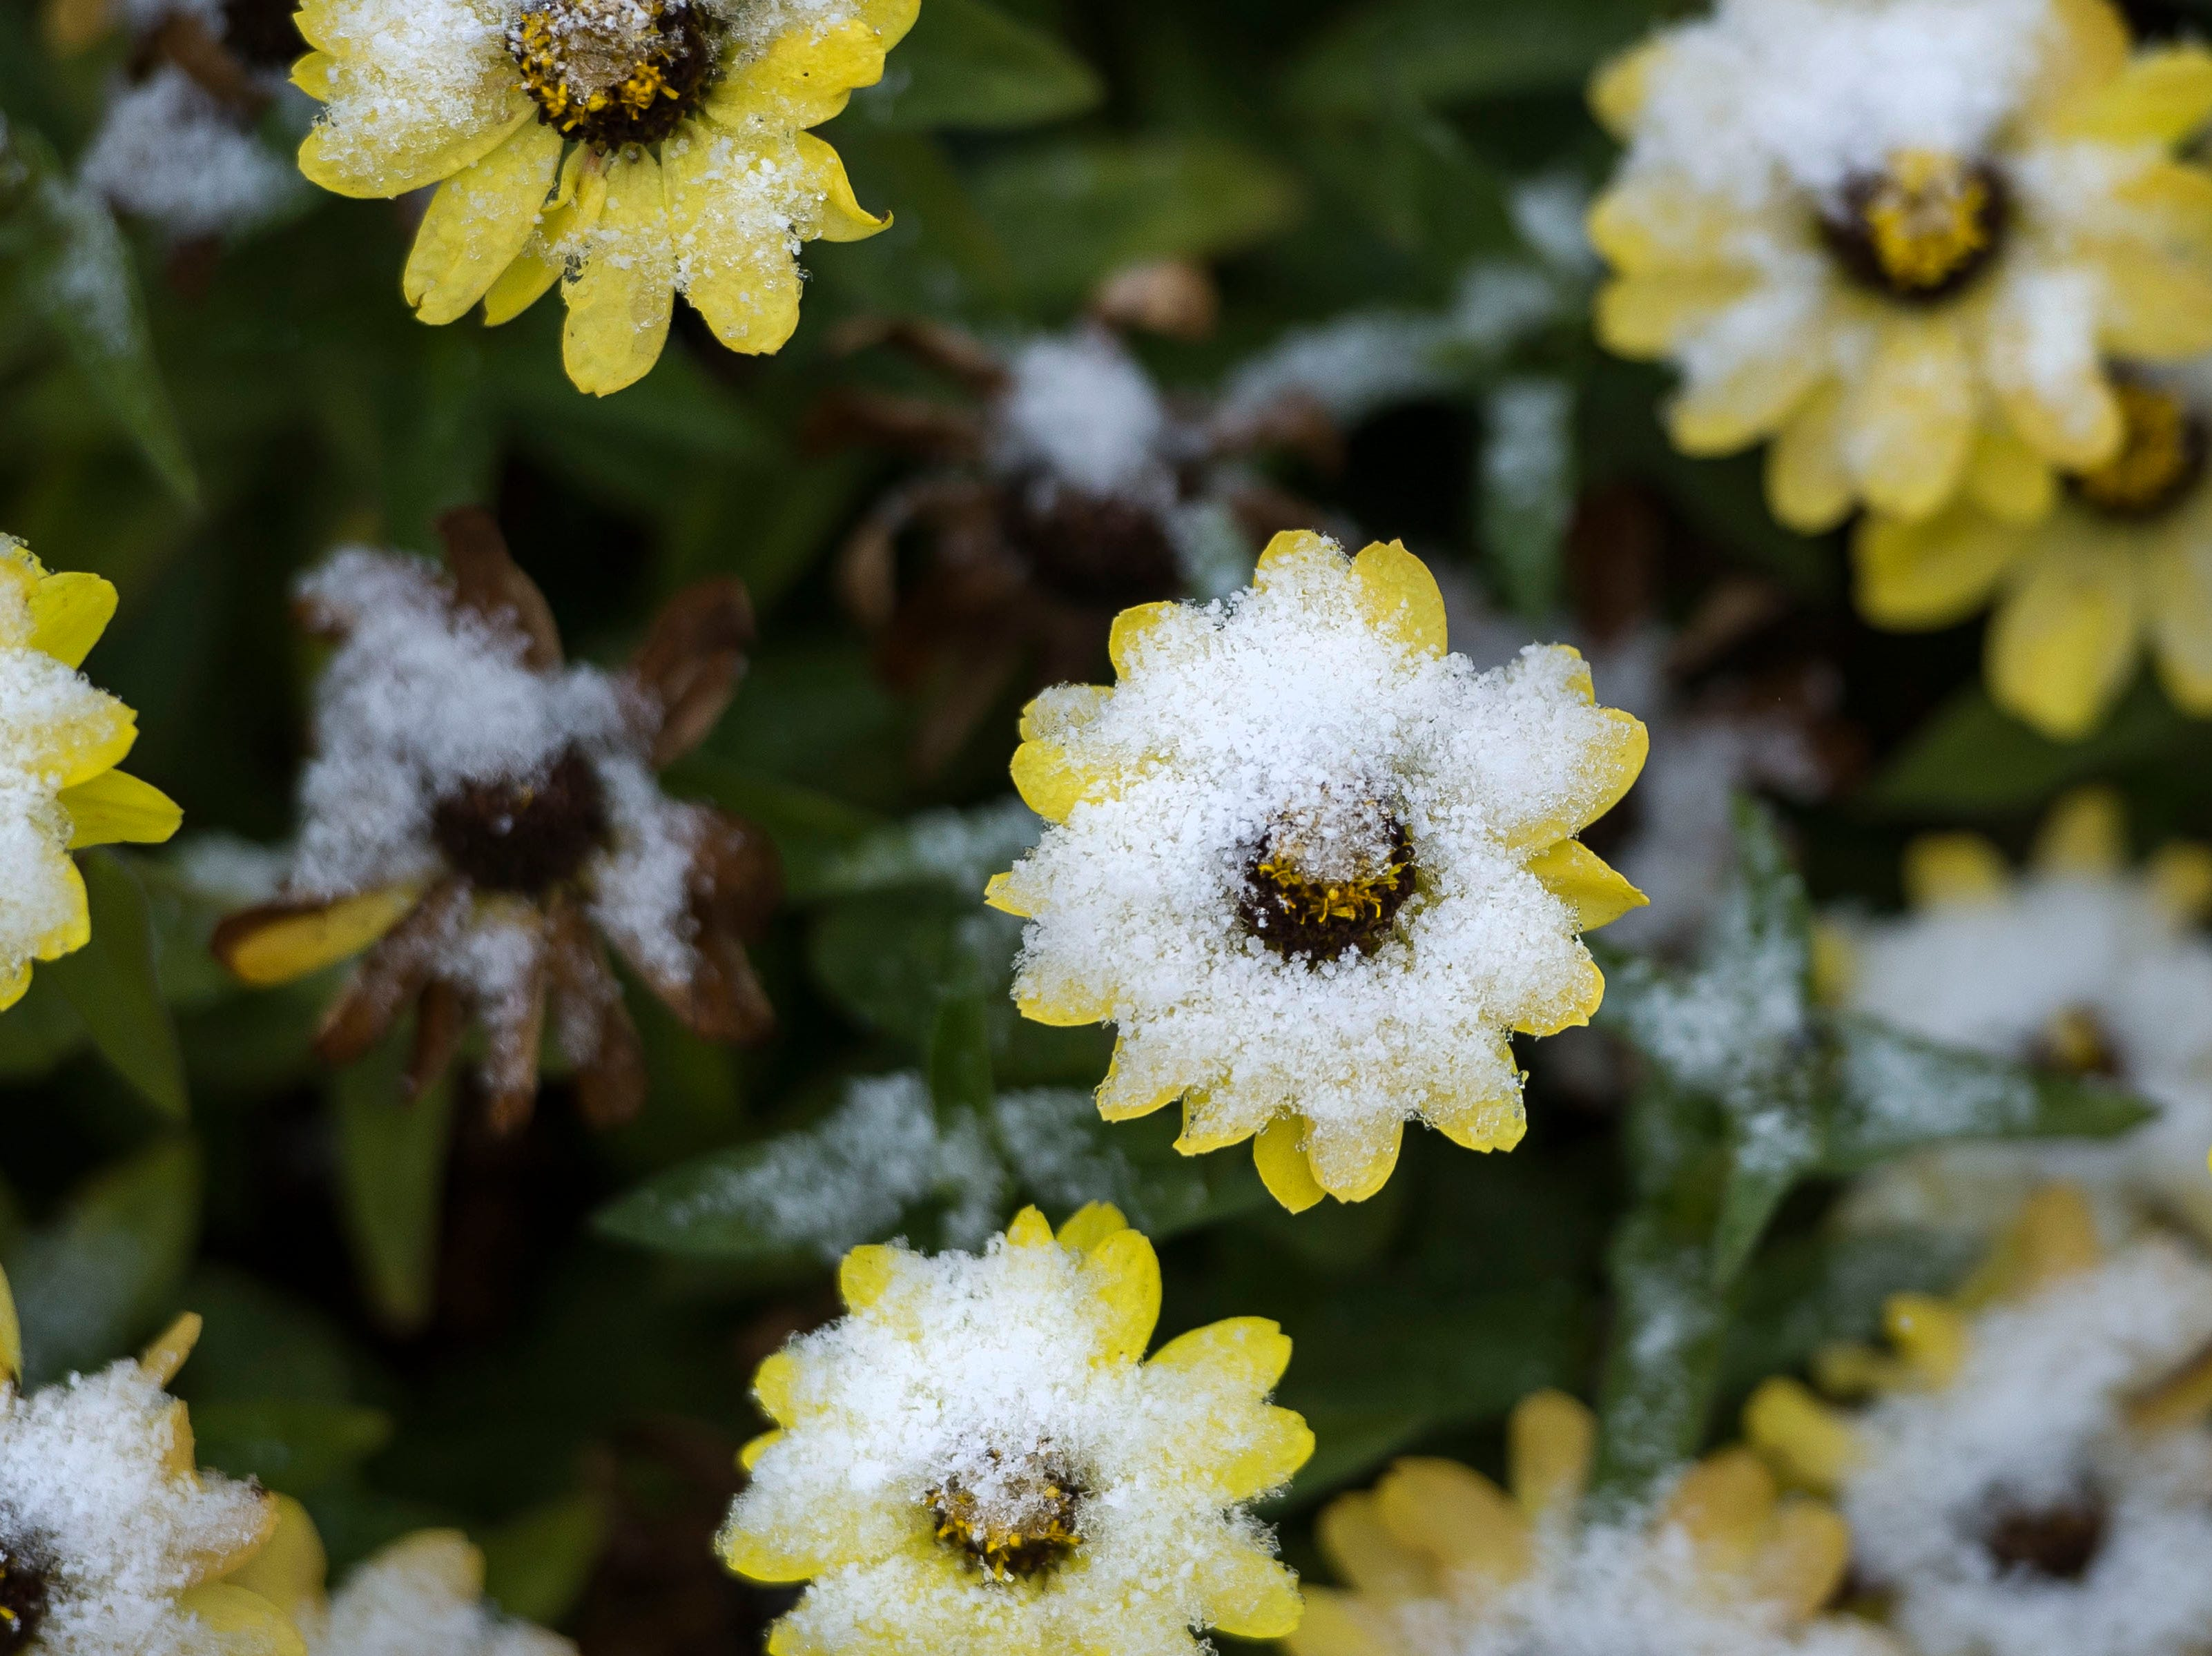 Snow clings to flower pedals on Wednesday, Oct. 10, 2018, at the Annual Flower Trial Garden on the Colorado State University campus in Fort Collins, Colo.